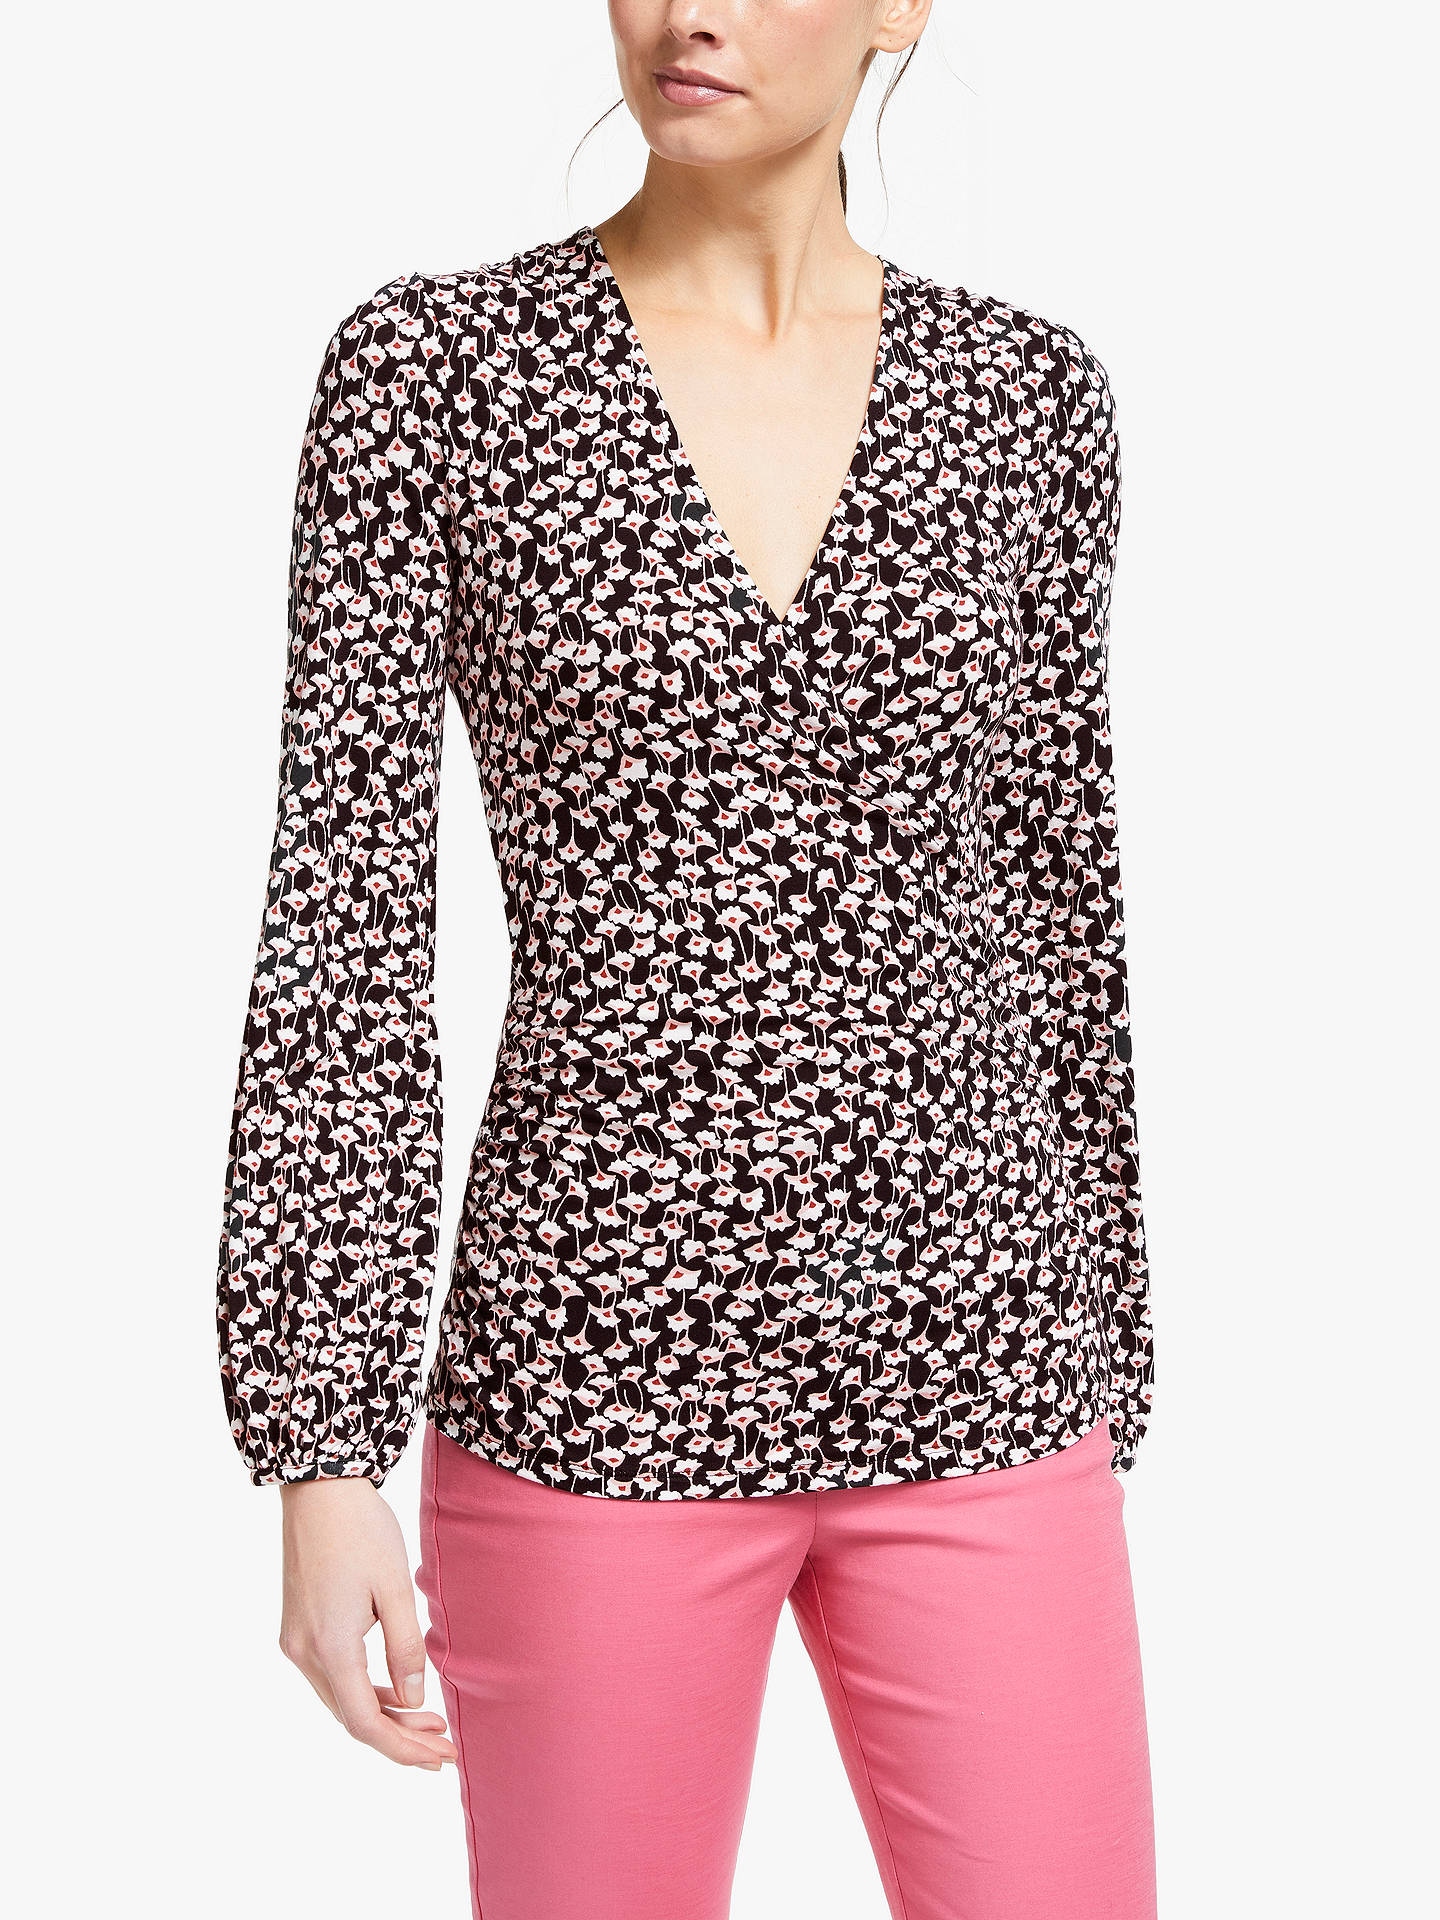 825d80bf9fc4 Buy Boden Elodie Wrap Top, Black, 10 Online at johnlewis.com ...